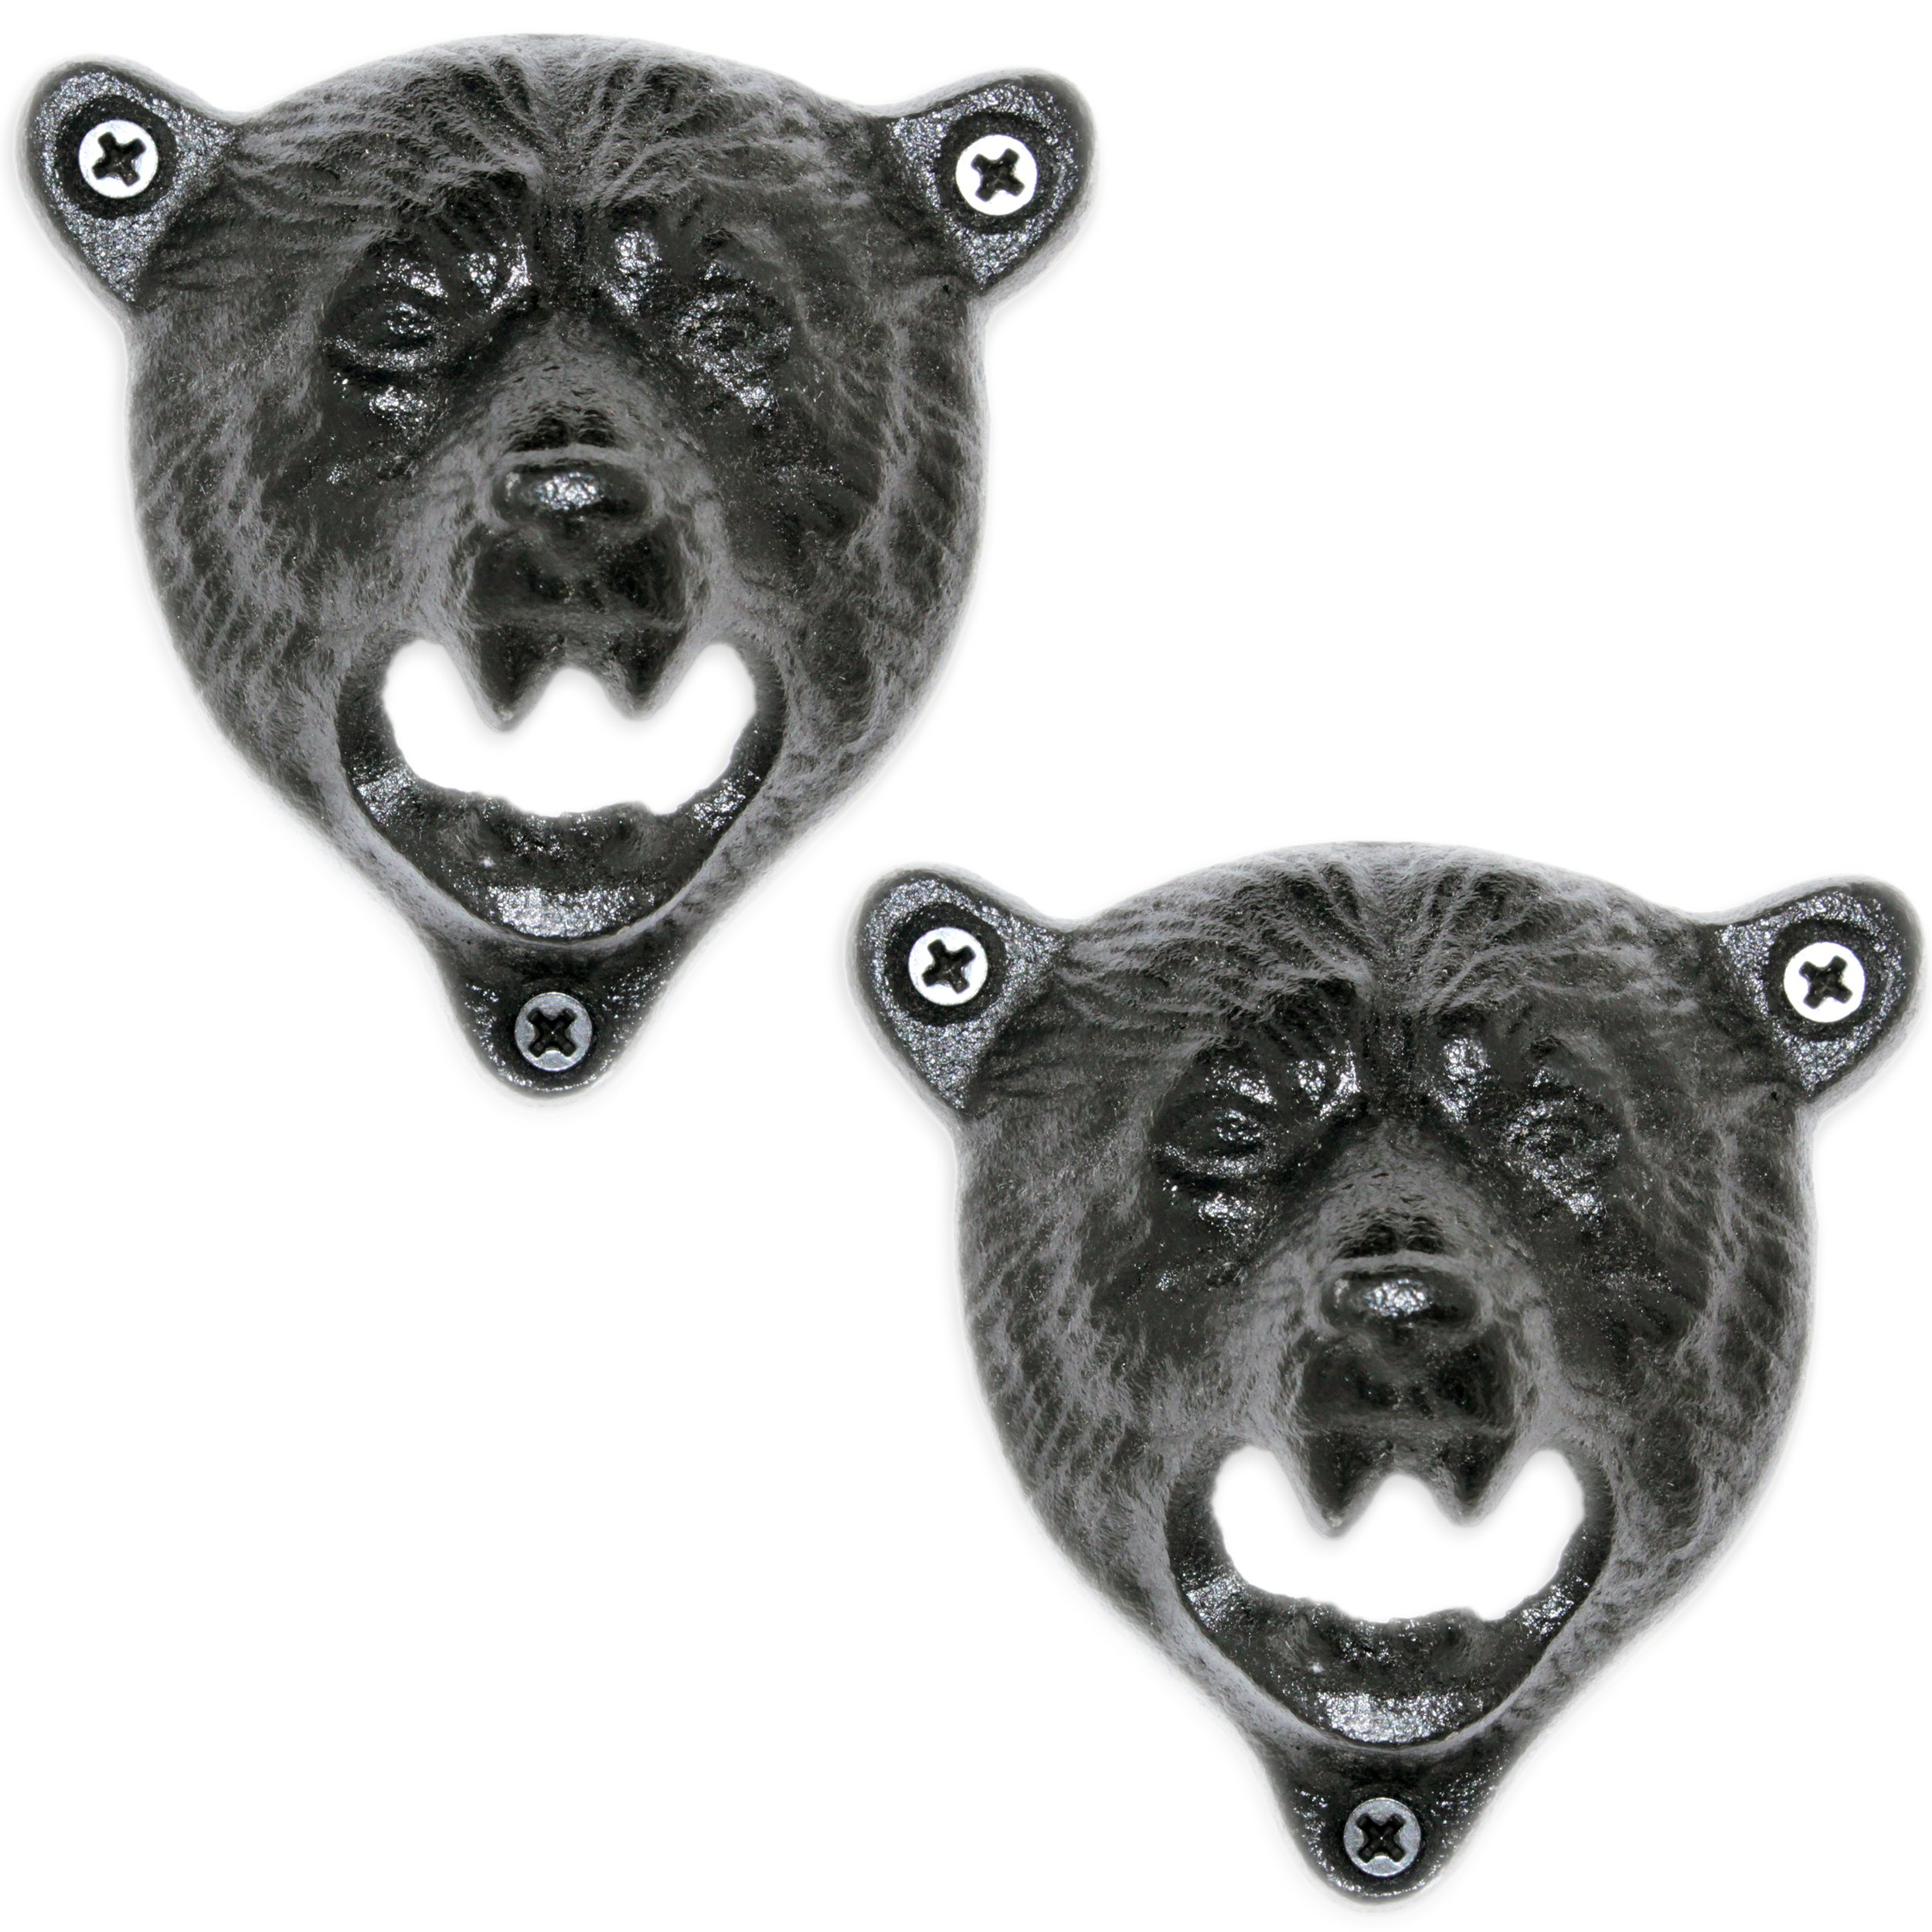 2 Grizzly Bear Wall Mount Beer Bottle Cap Openers | Durable Cast Iron and Black Vintage Finish